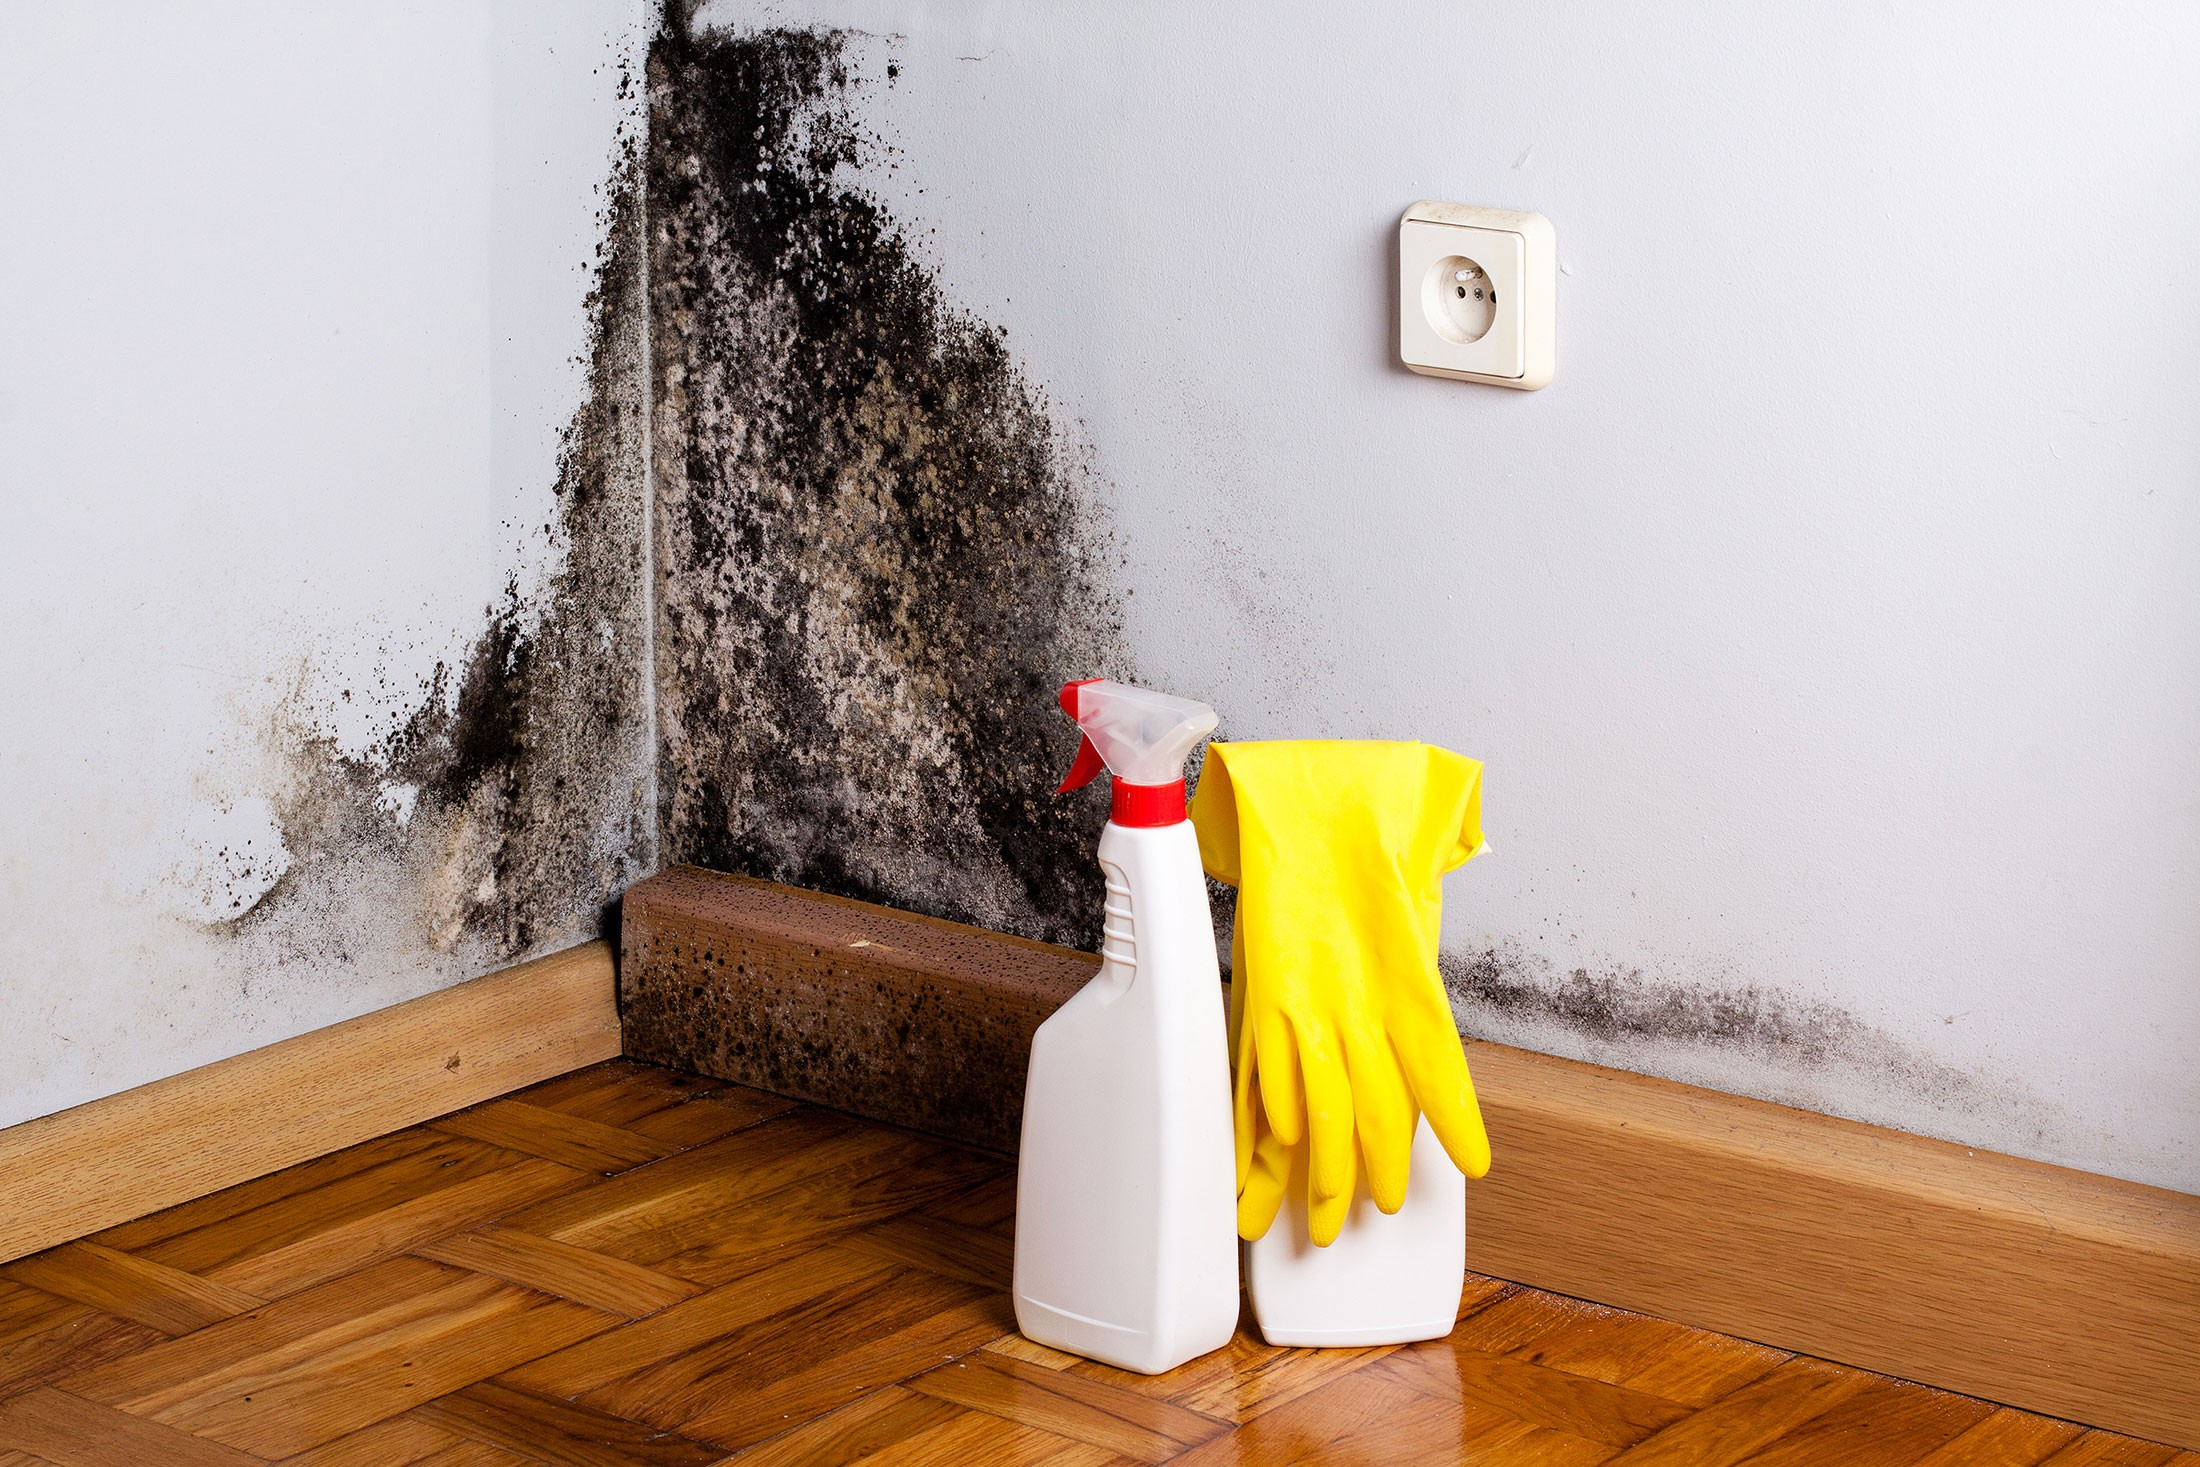 House Mold Inspection